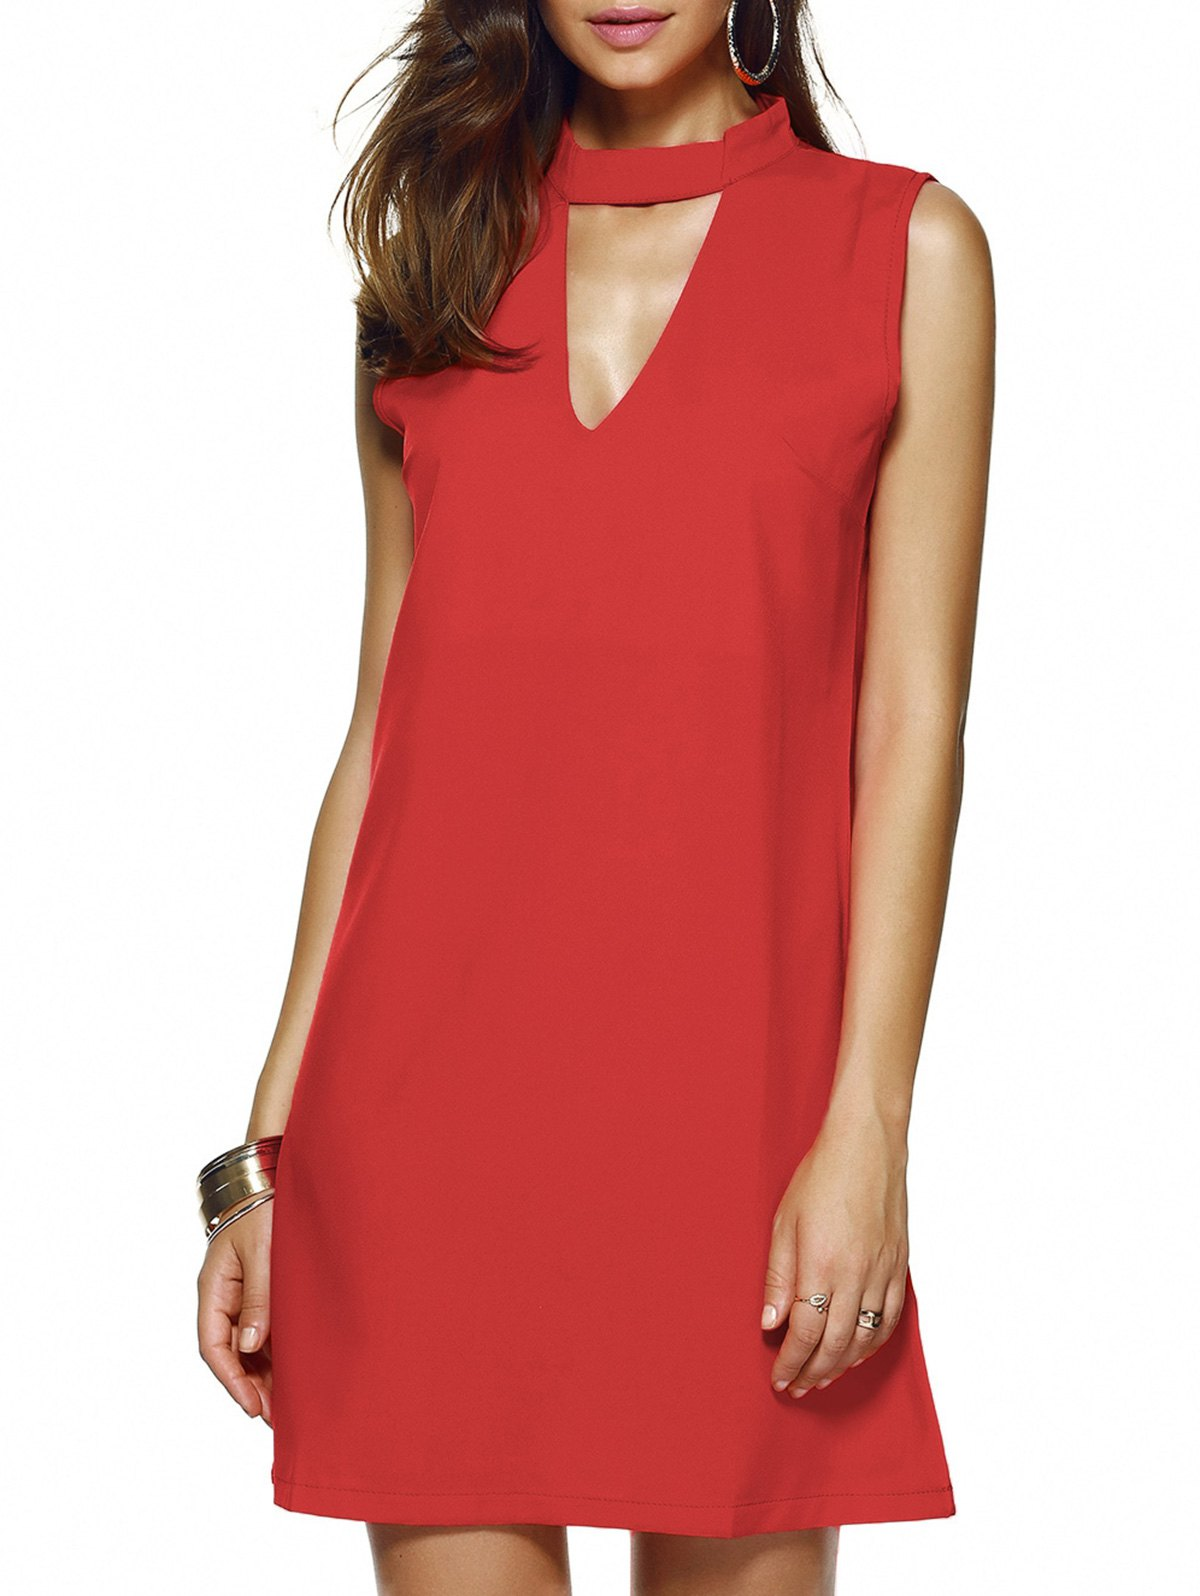 Stylish Women's Keyhole Neck Sleeveless Solid Color Dress - RED XL